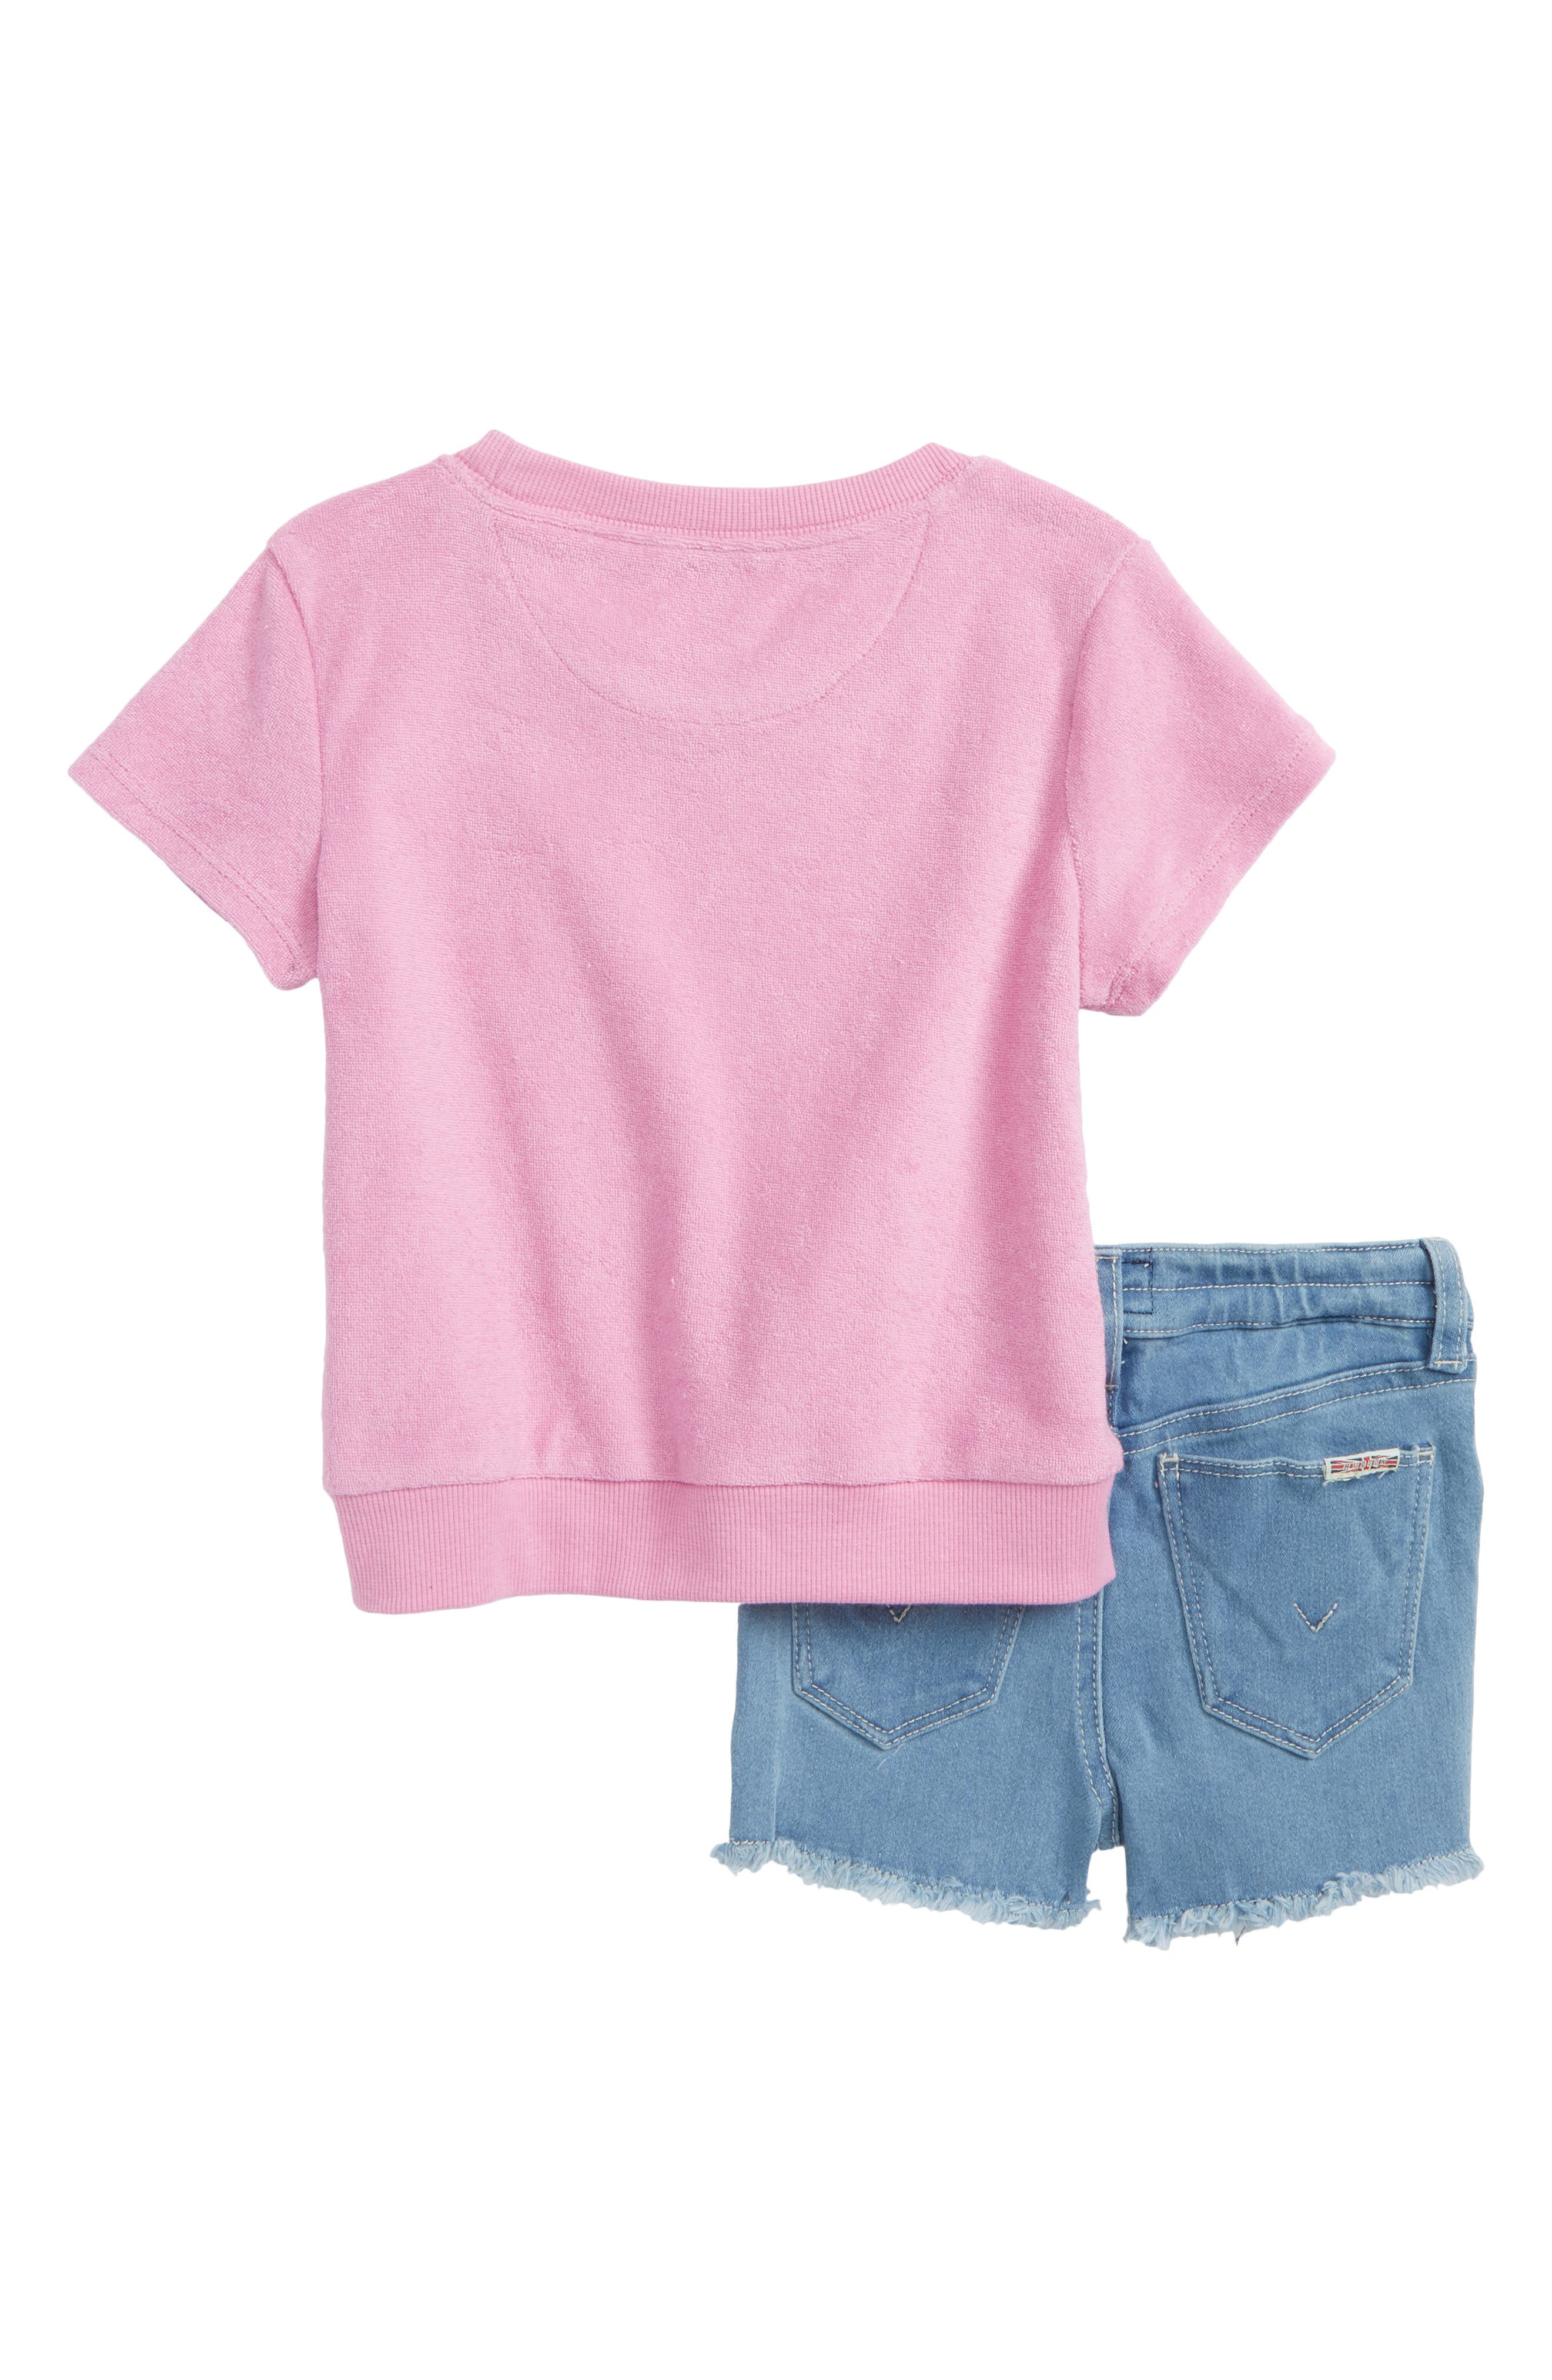 French Terry Tee & Shorts Set,                             Alternate thumbnail 2, color,                             500